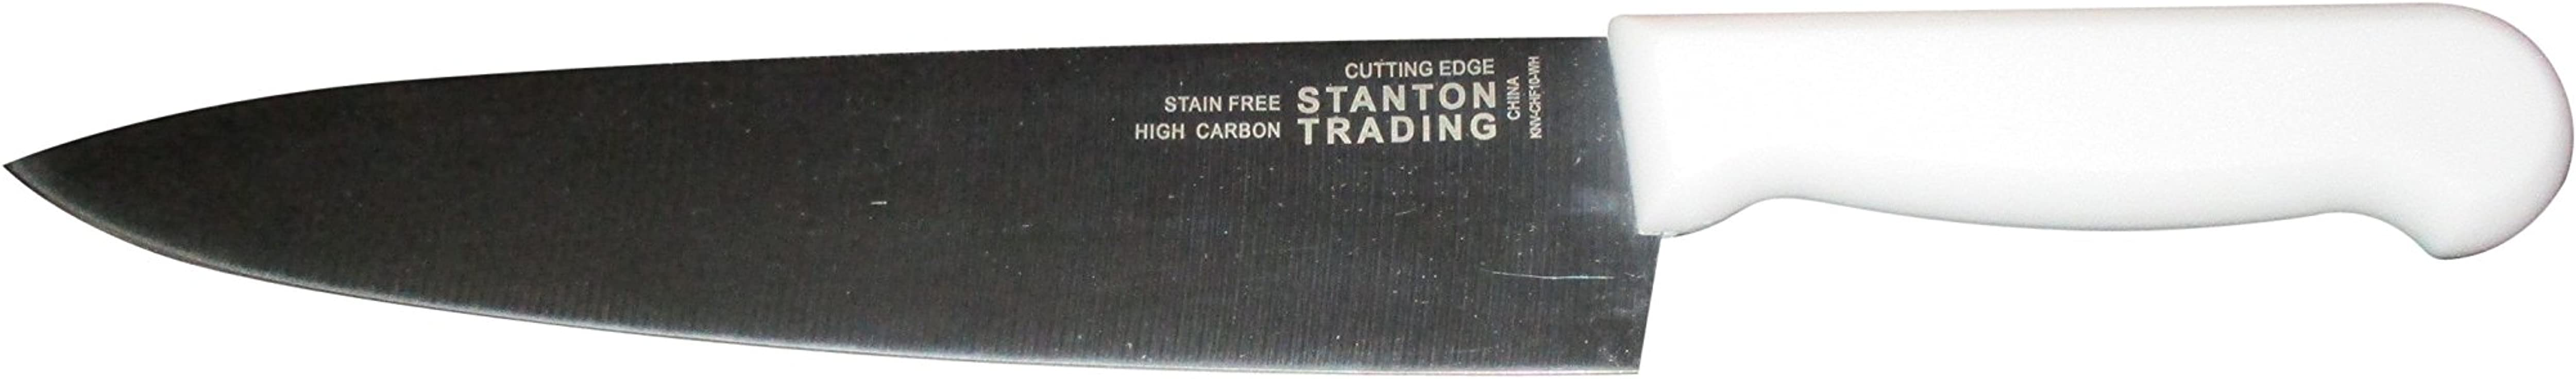 Stanton Chef Knife Commercial Series 10 With White Plastic Handle 1